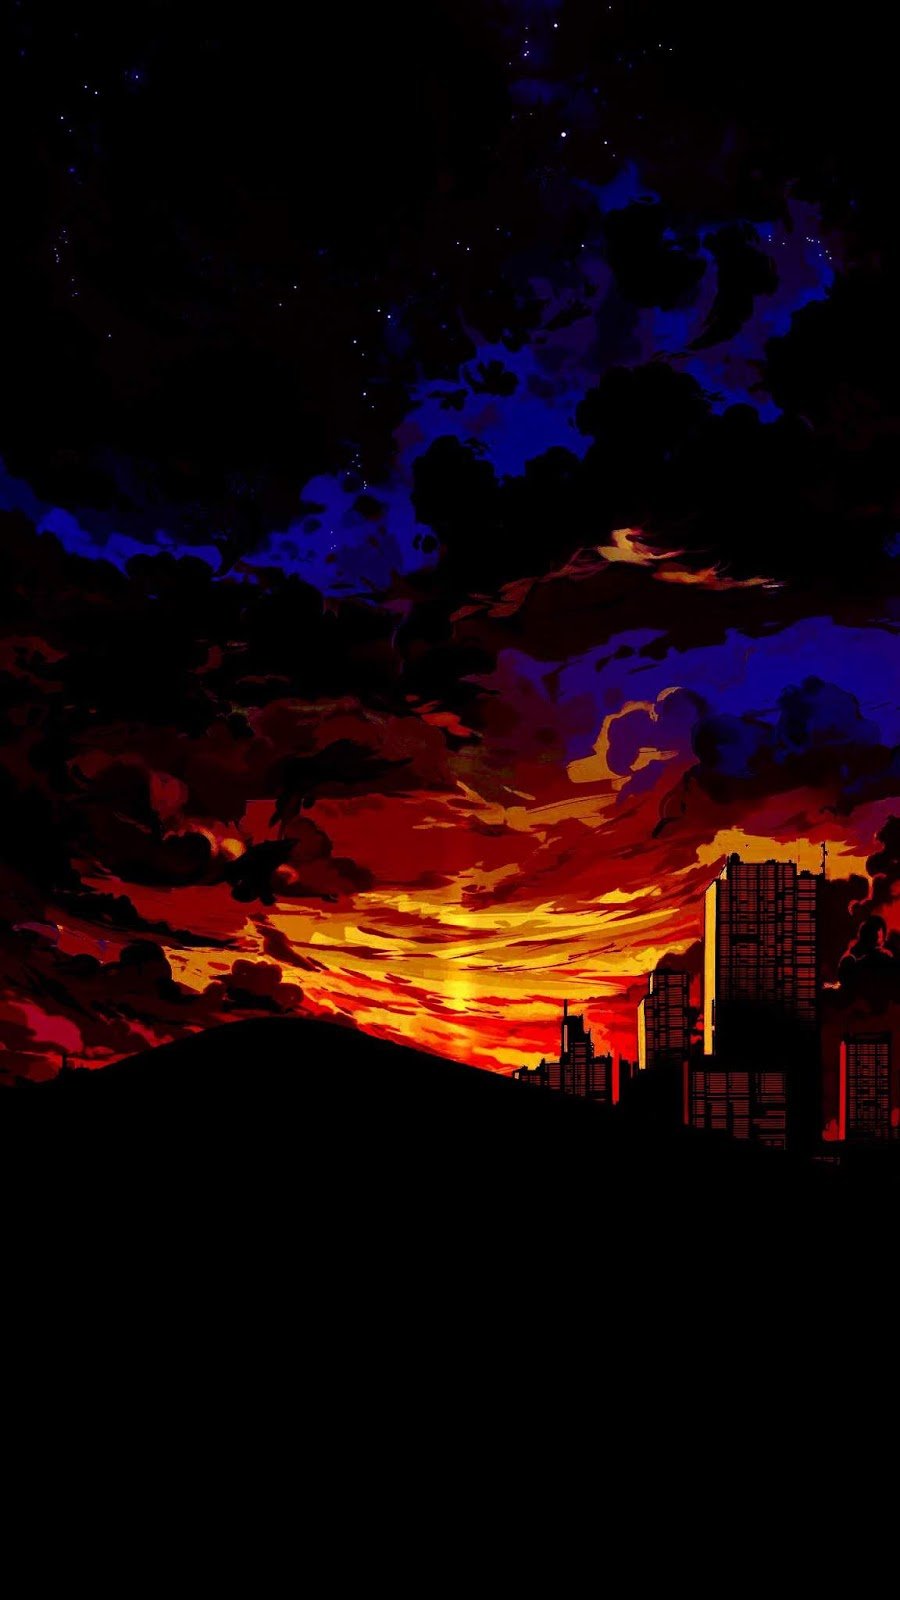 Anime Sunset in the Desert